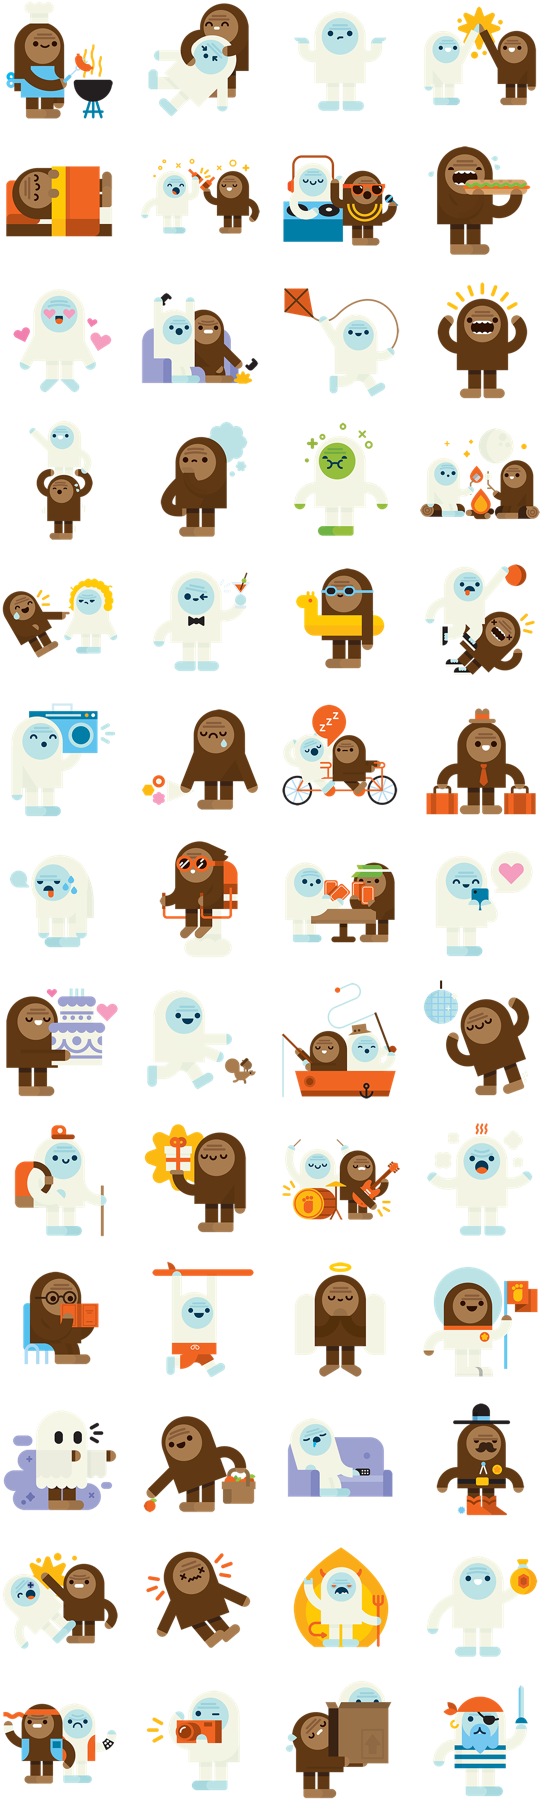 Bigs and Yeti Facebook Stickers